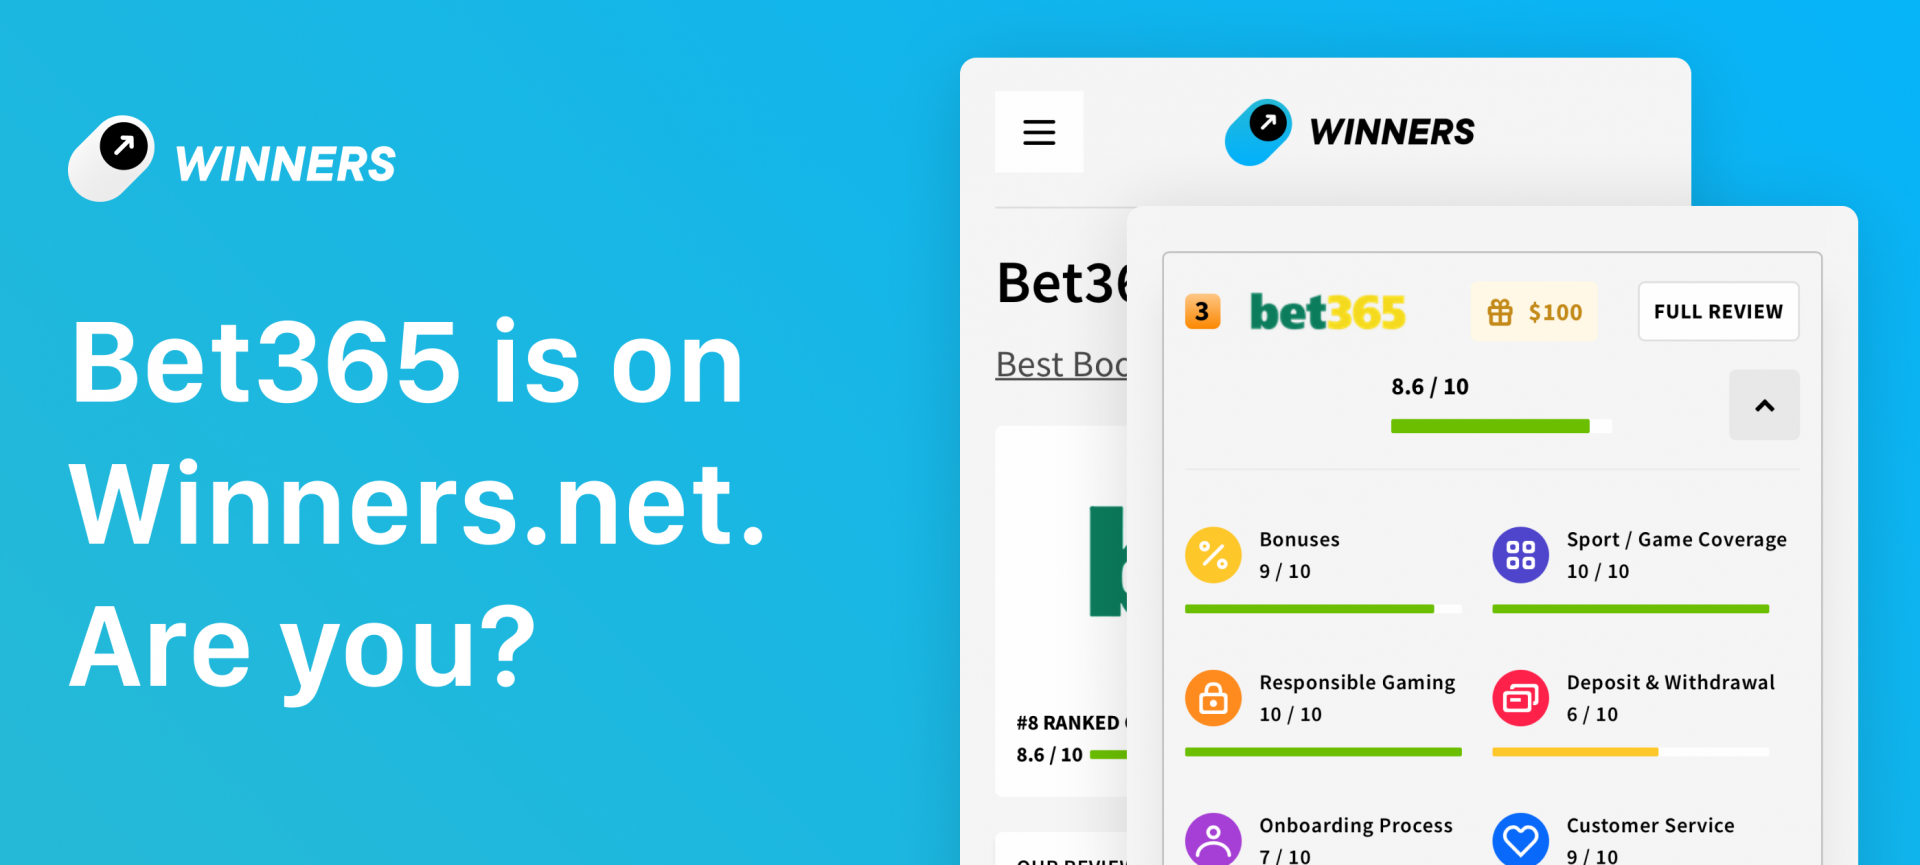 Winners.net and Bet365 Join hands for an exclusive partnership Deal